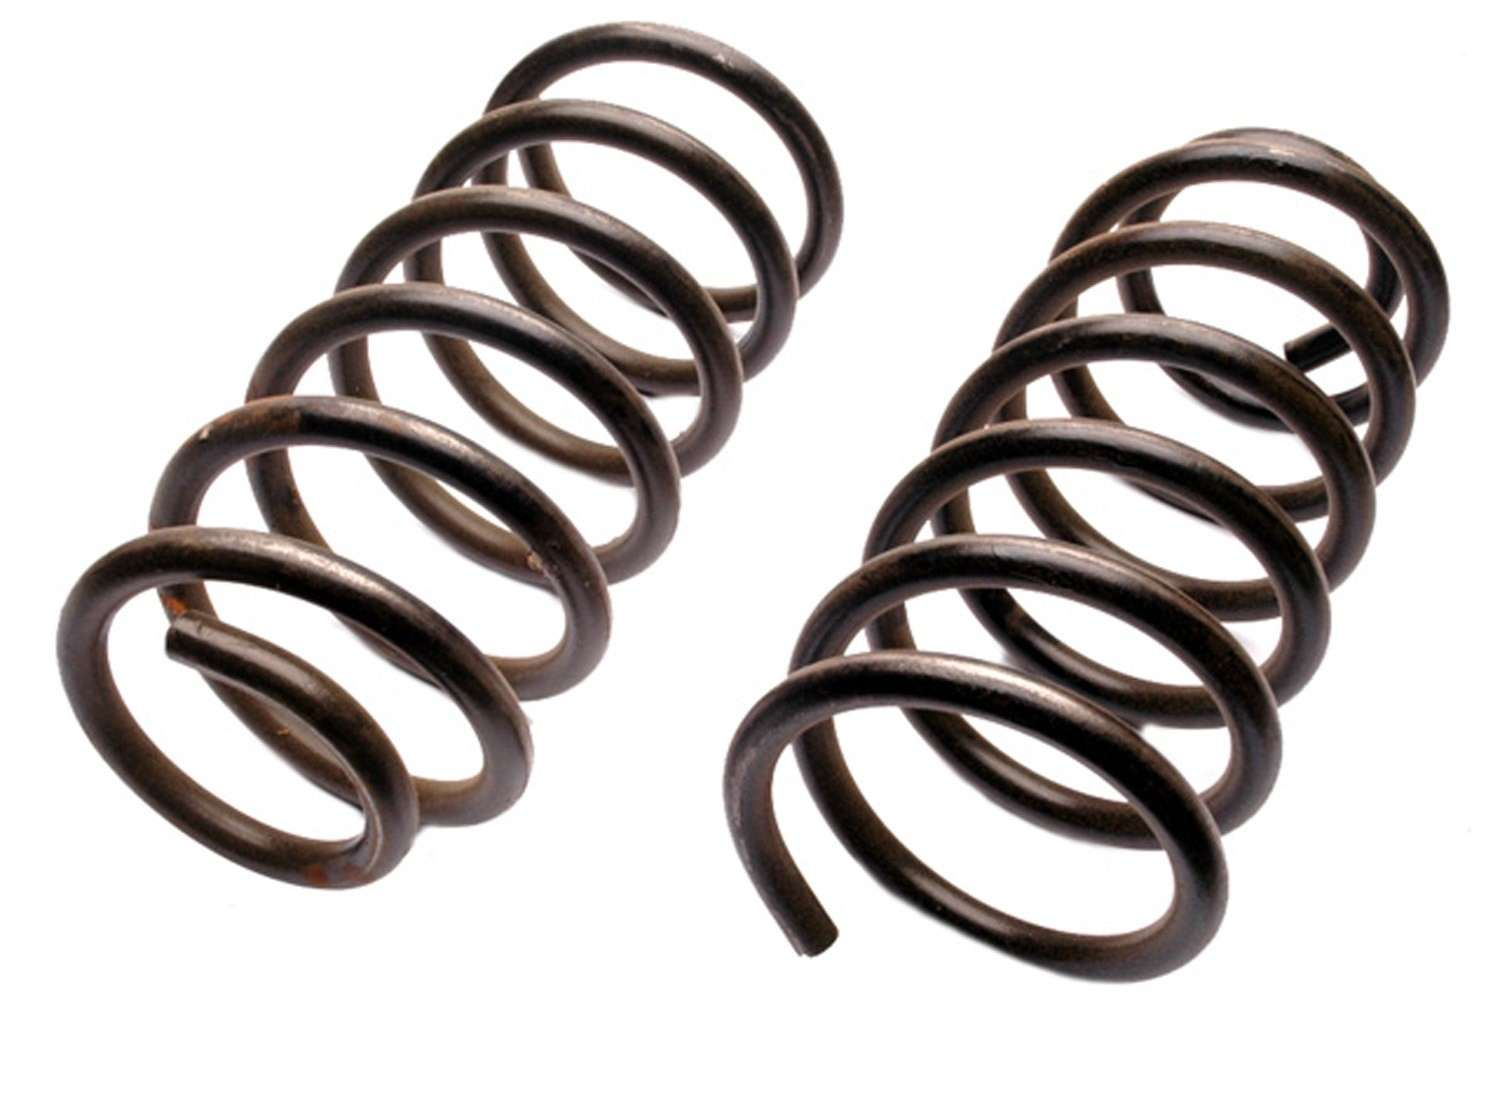 ACDELCO PROFESSIONAL - Coil Spring - DCC 45H0090